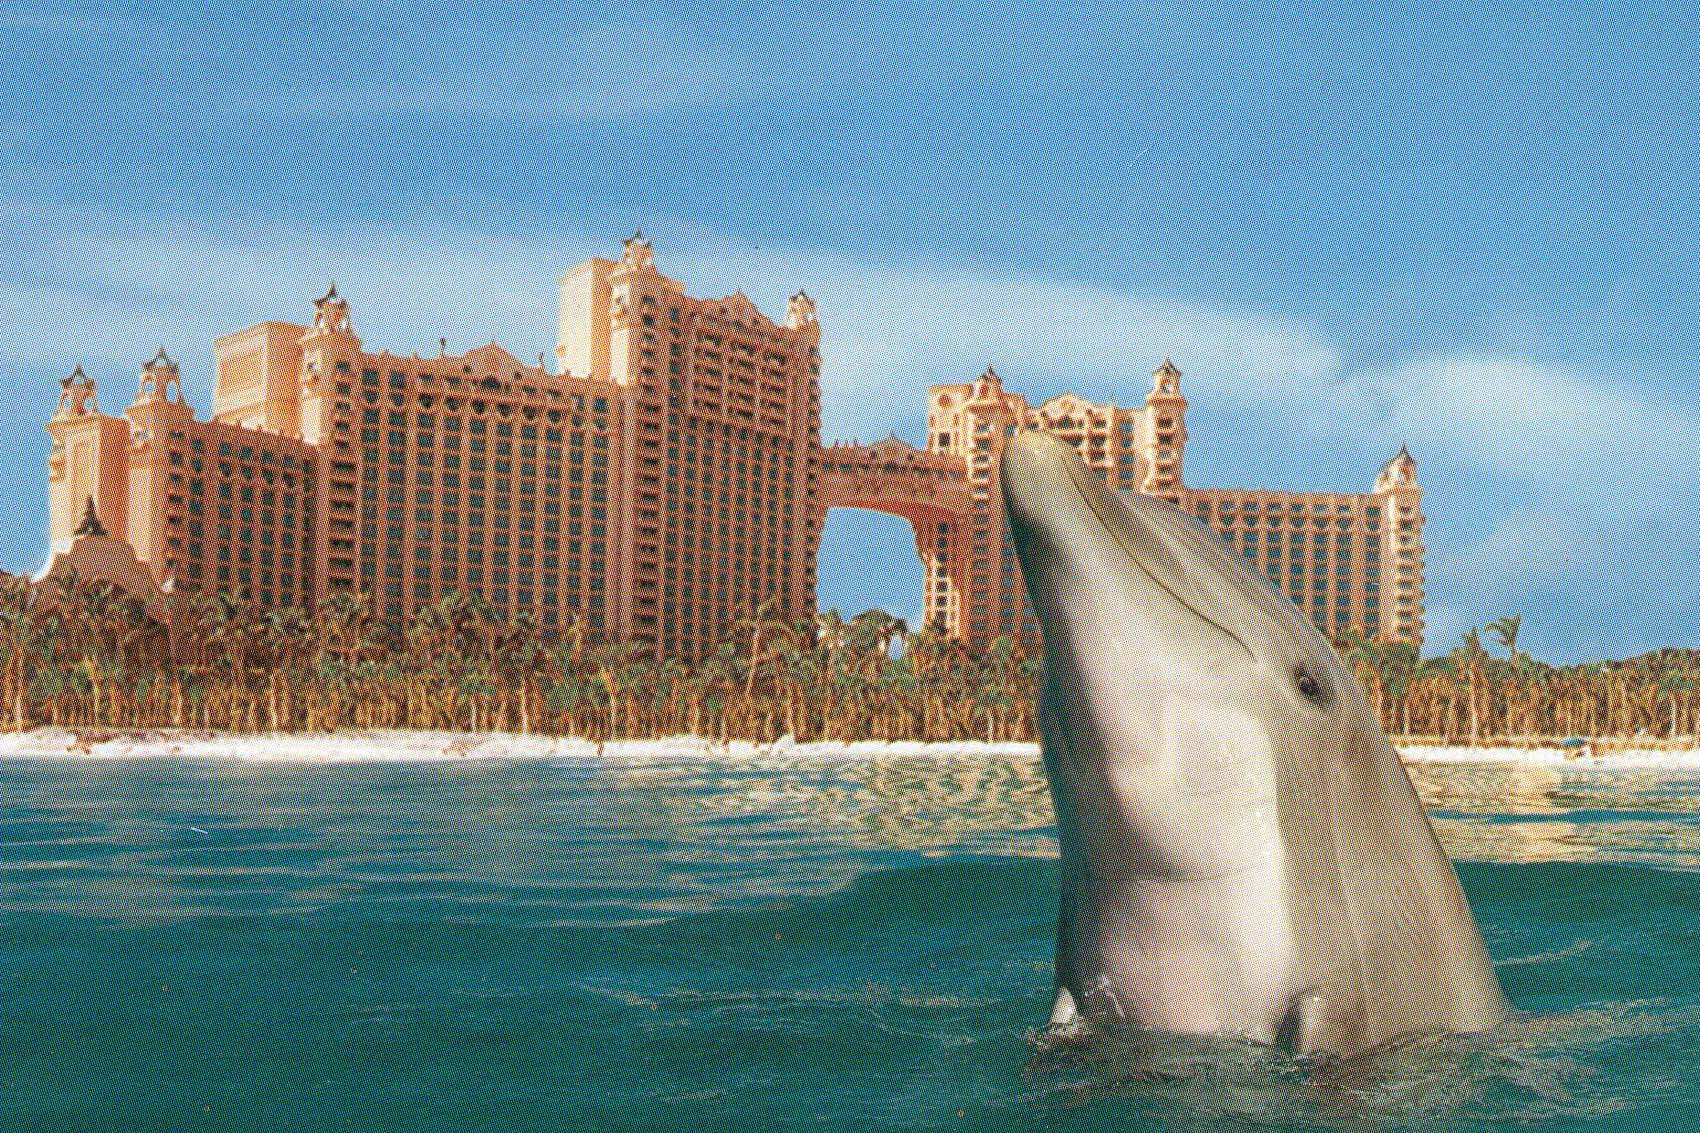 Dolphin Cay In The Premises Of Atlantis Hotel Paradise Island